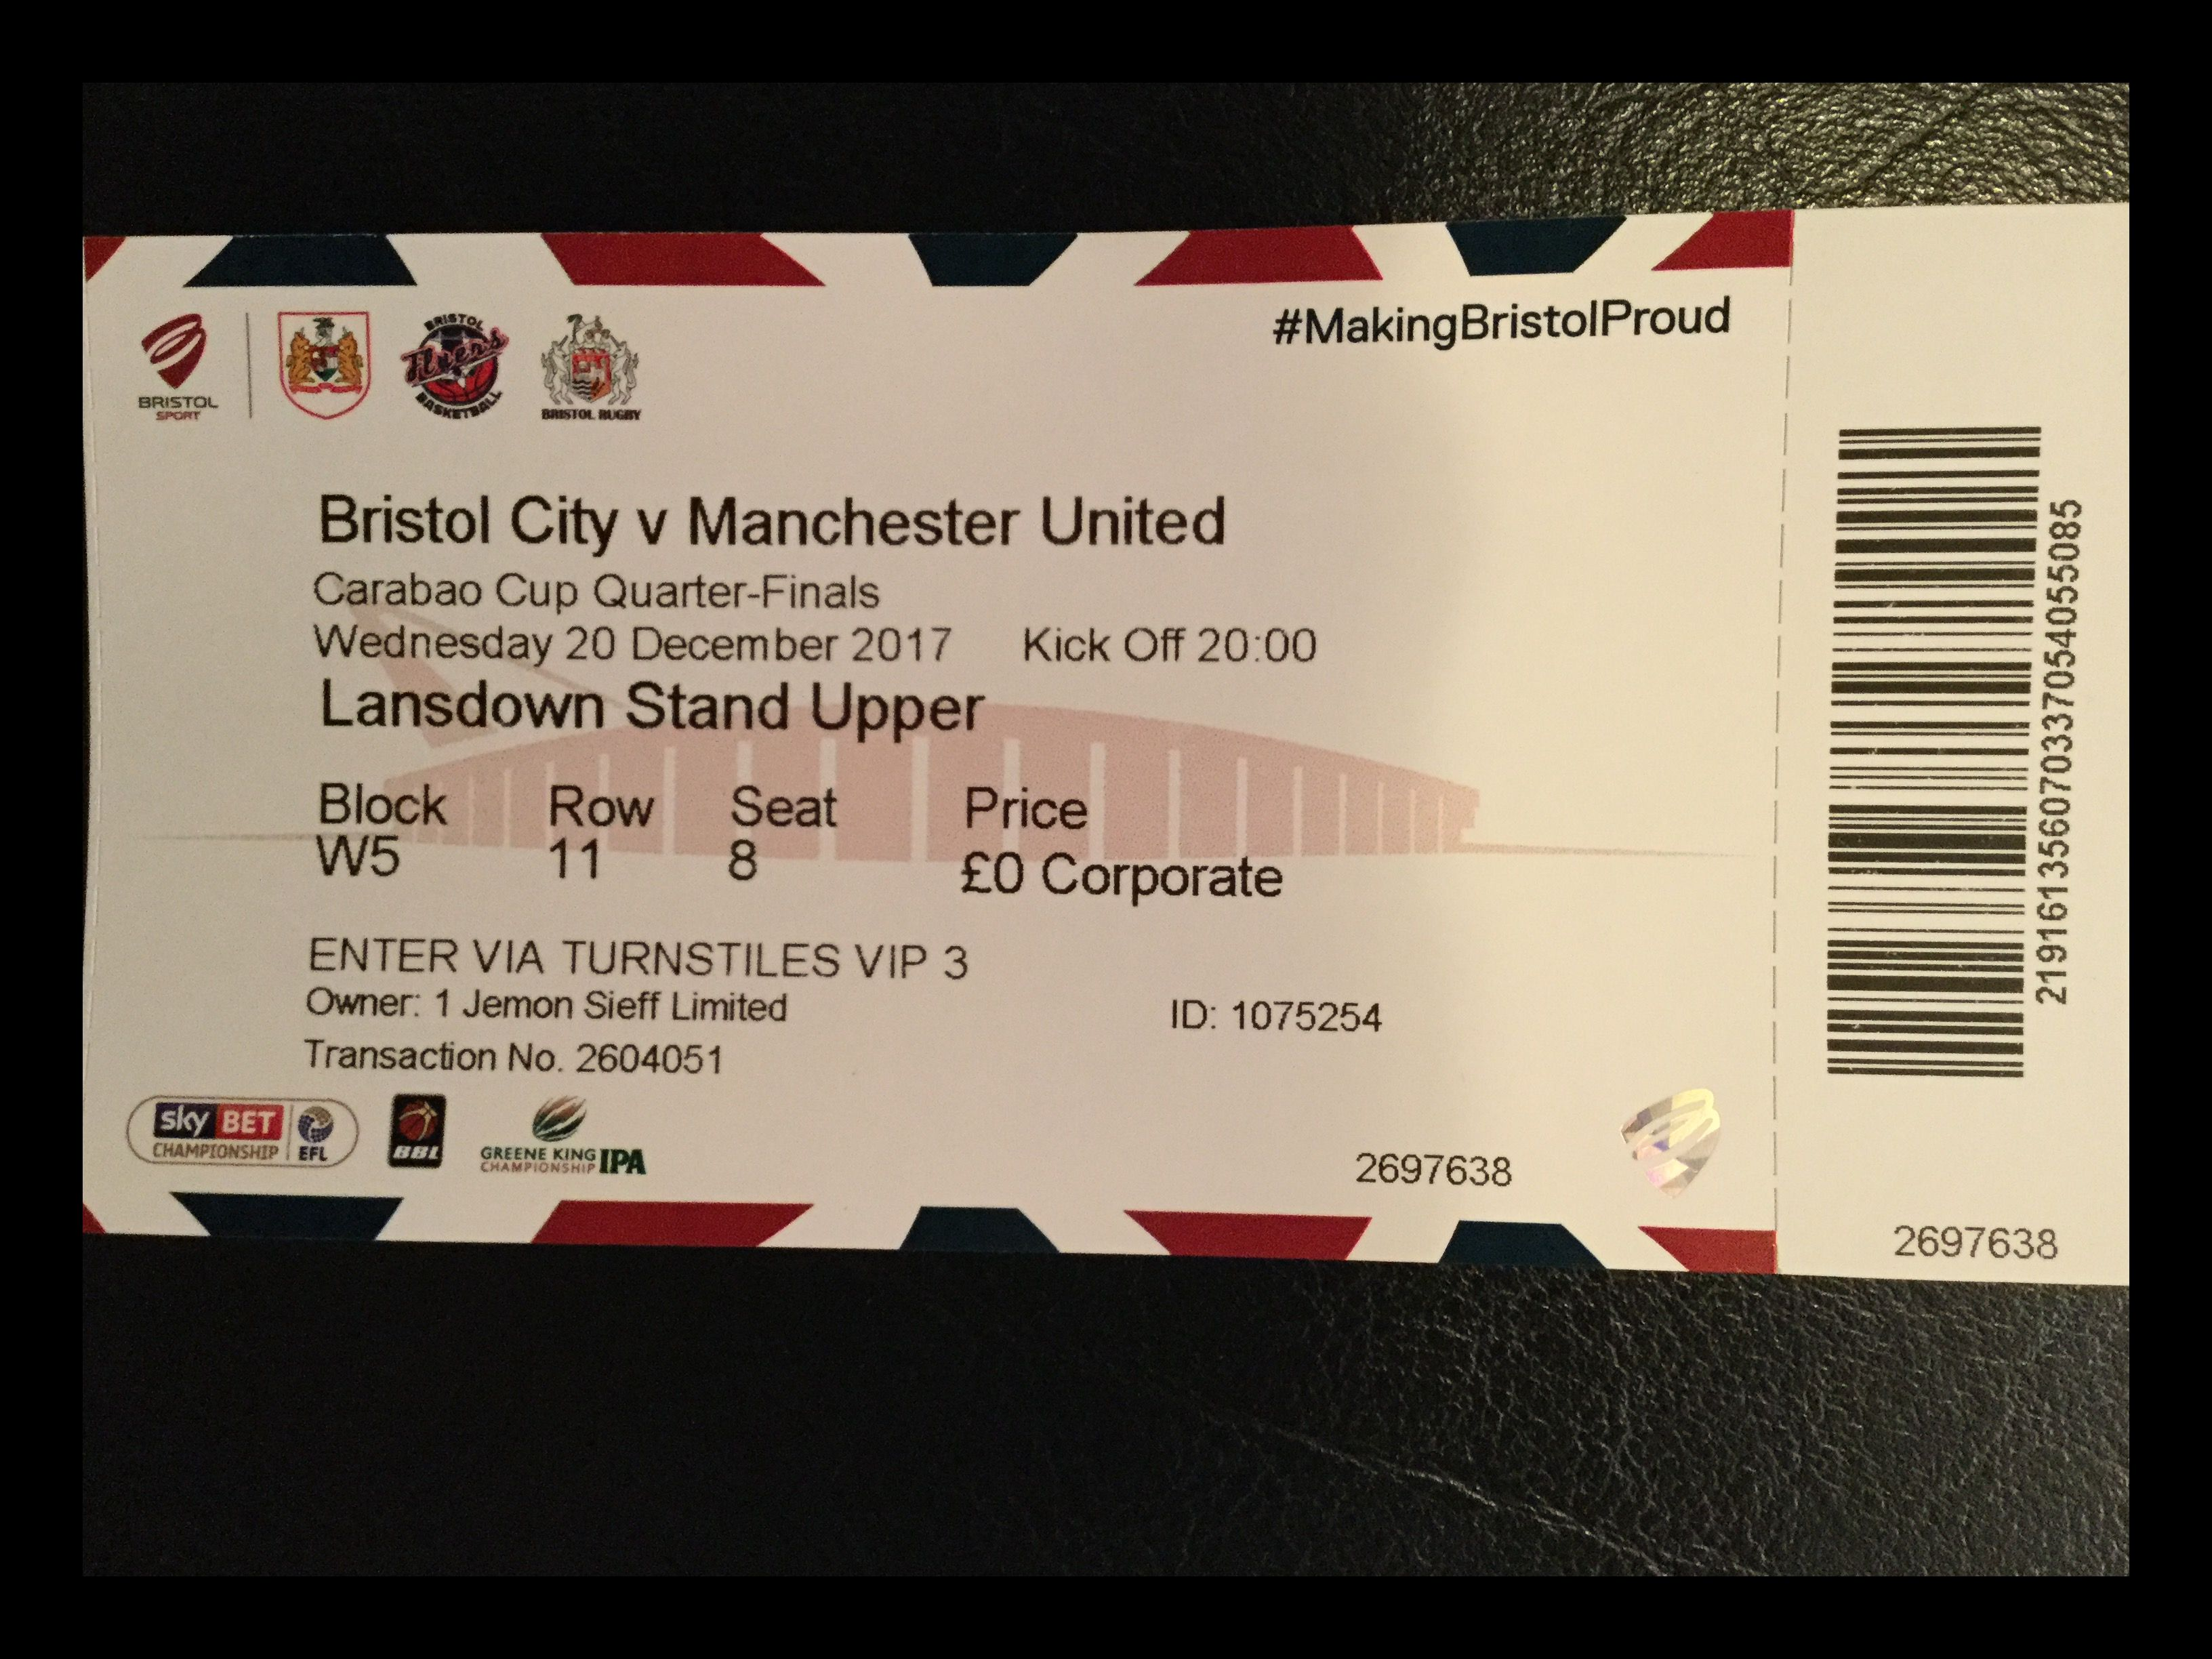 Bristol City v Manchester United 20-12-17 Ticket